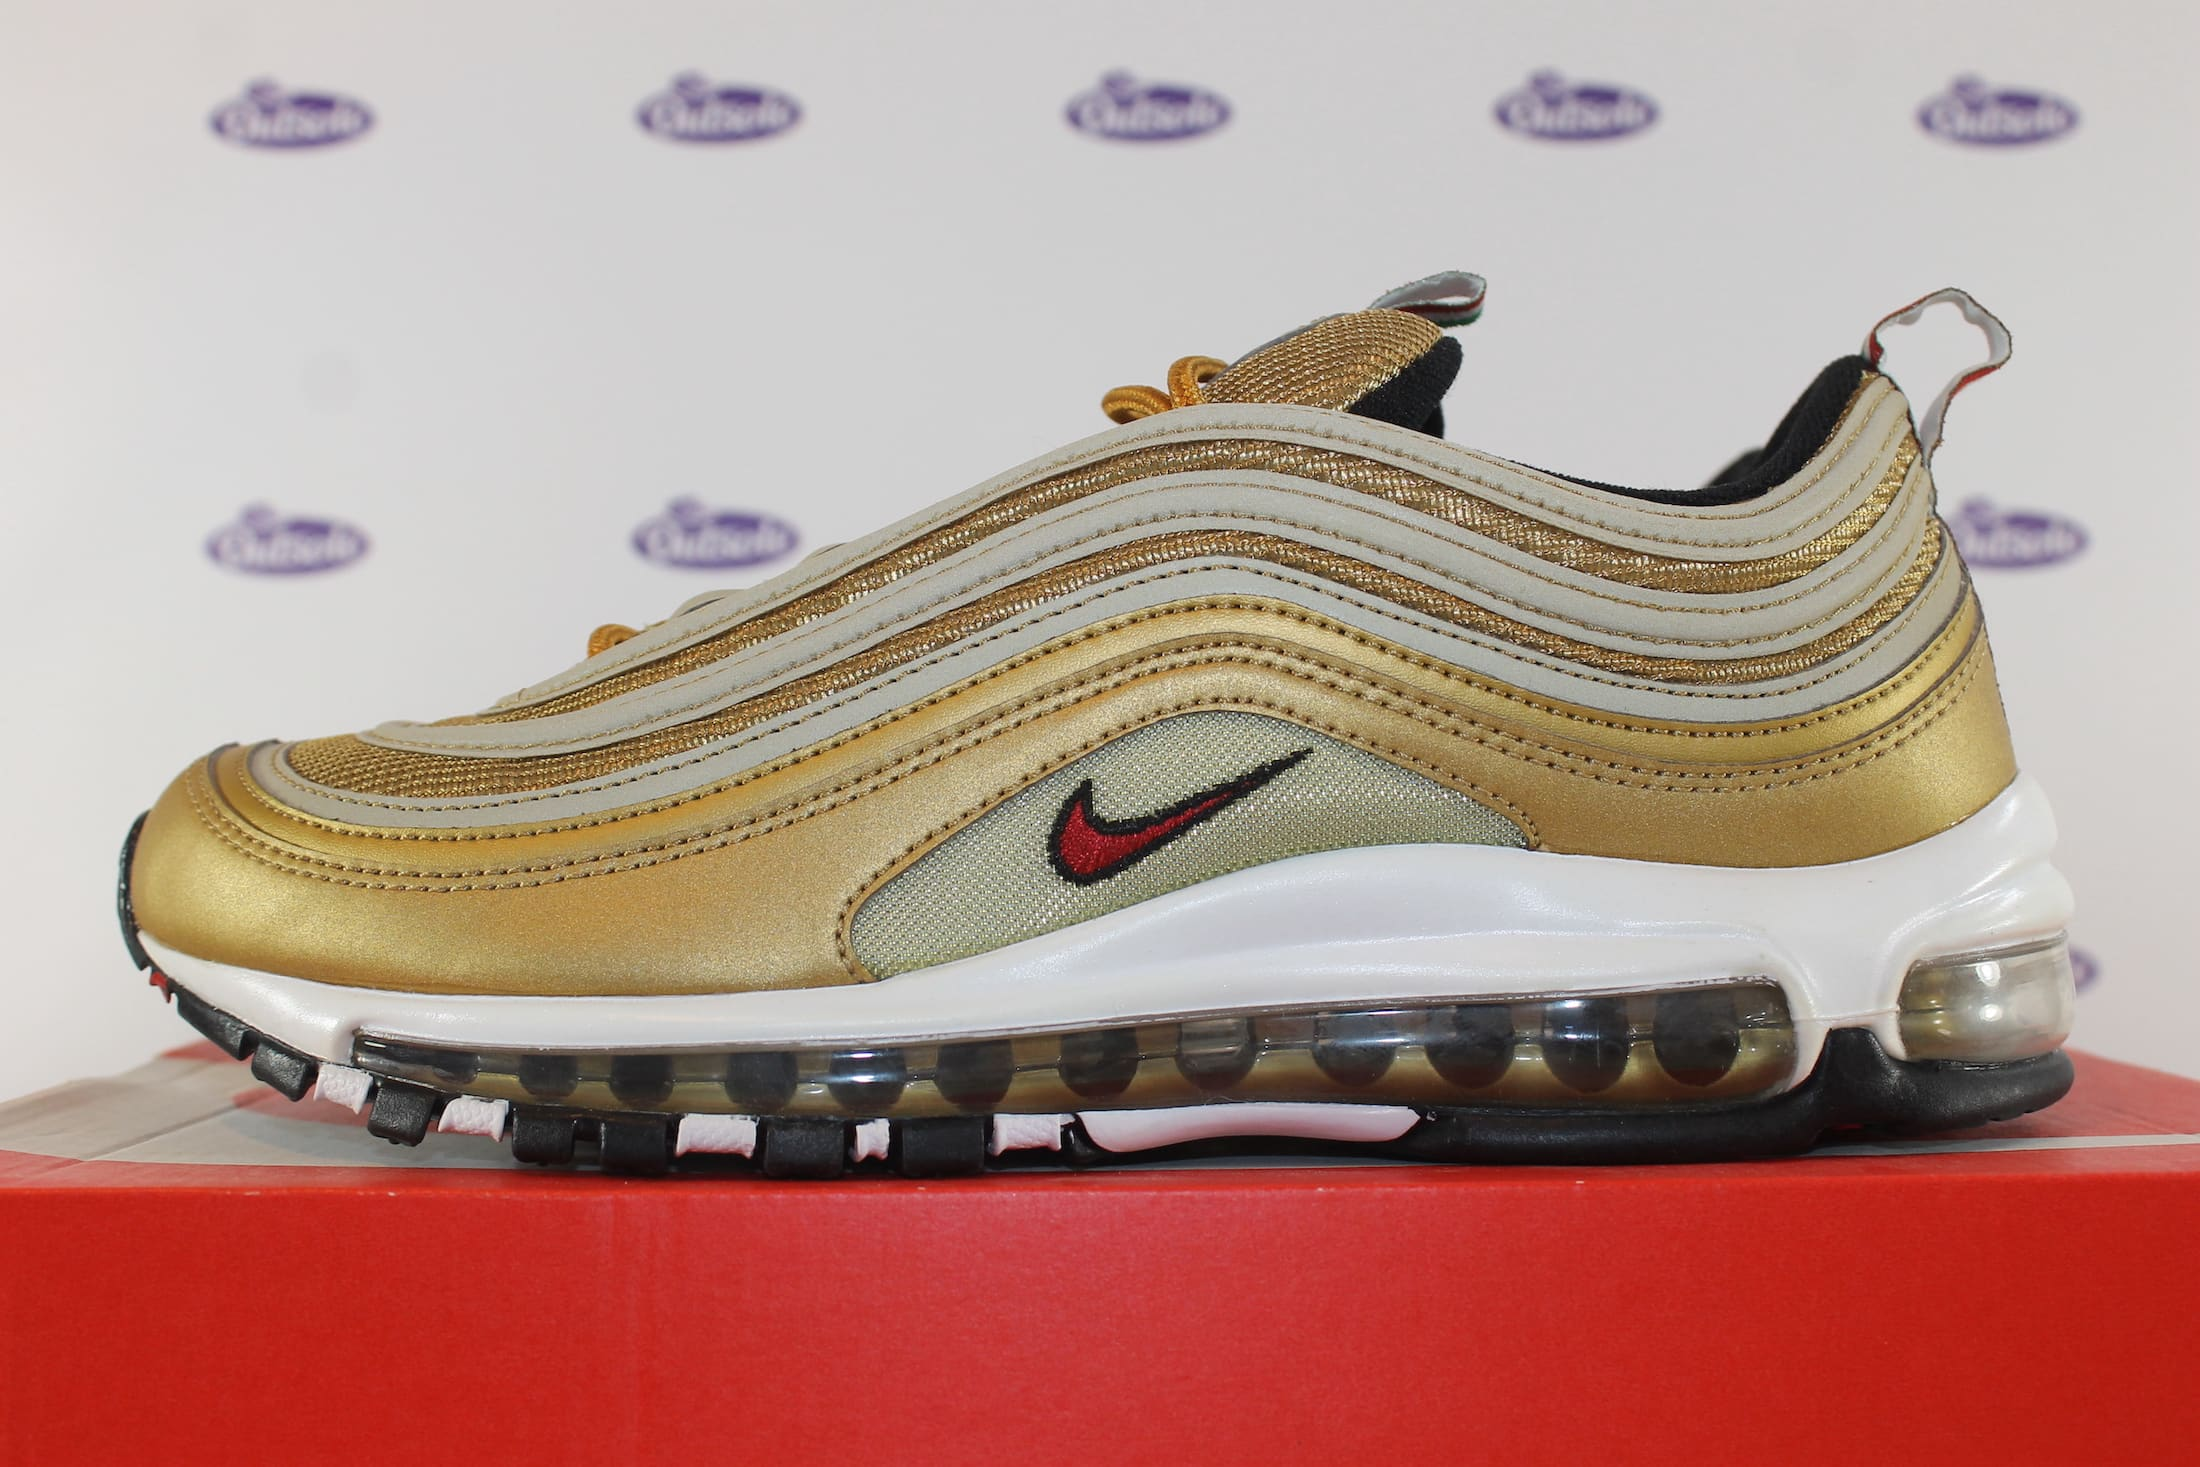 Nike Air Max 97 Metallic Gold Italy